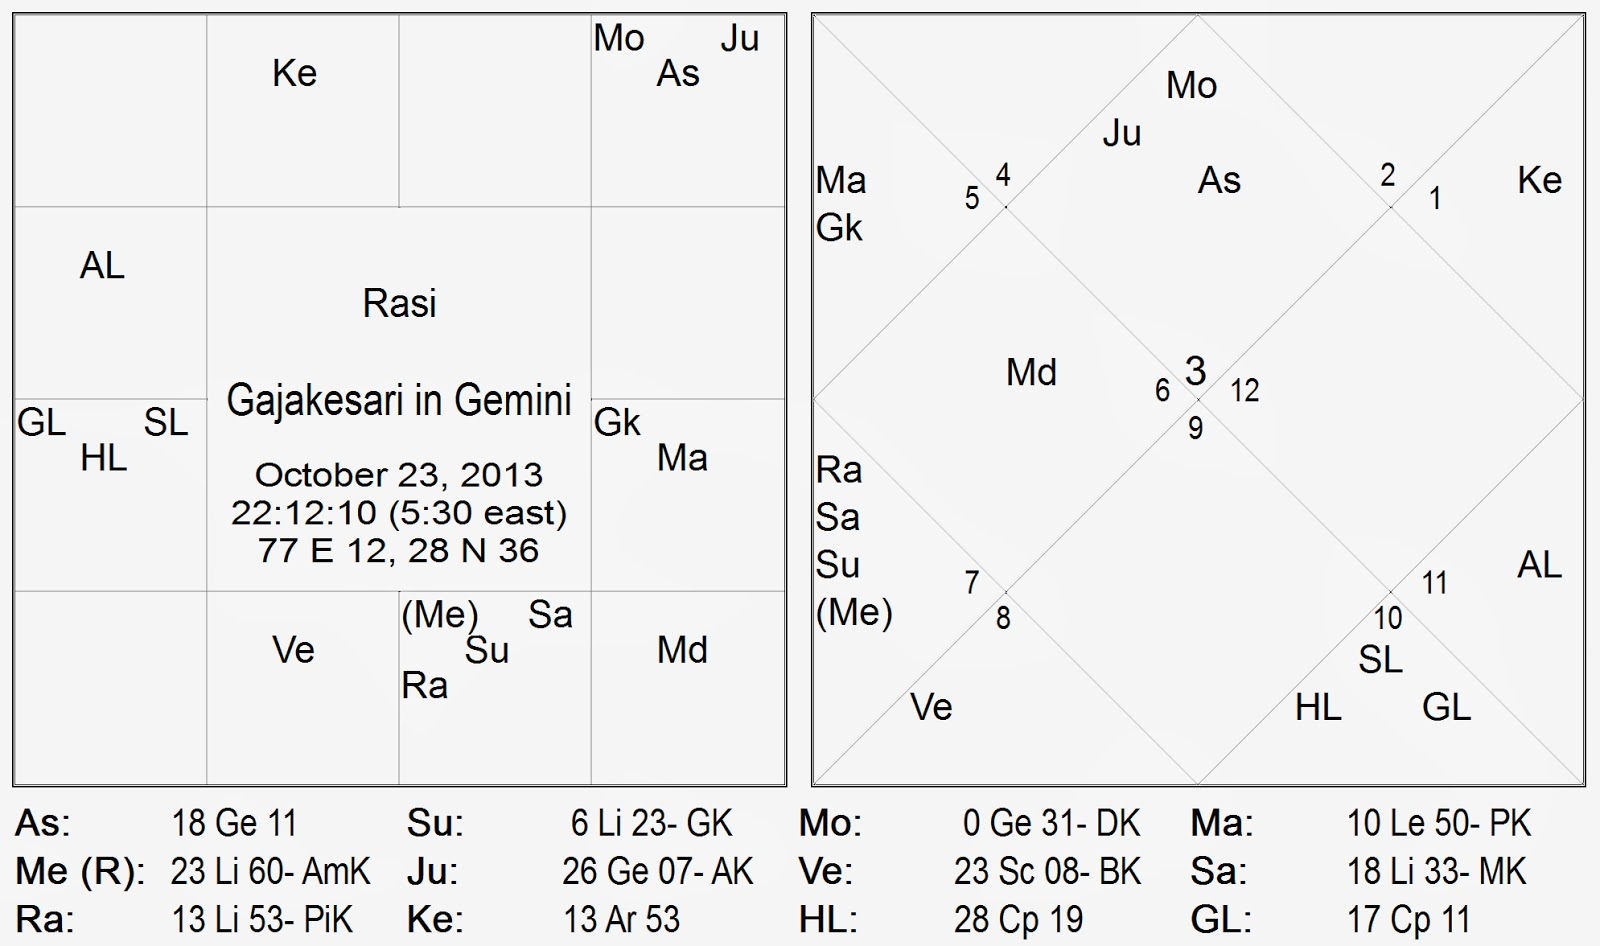 Scope of gajakesari yoga moon and jupiter in gemini with mercury retrograde on 23rd october 2013